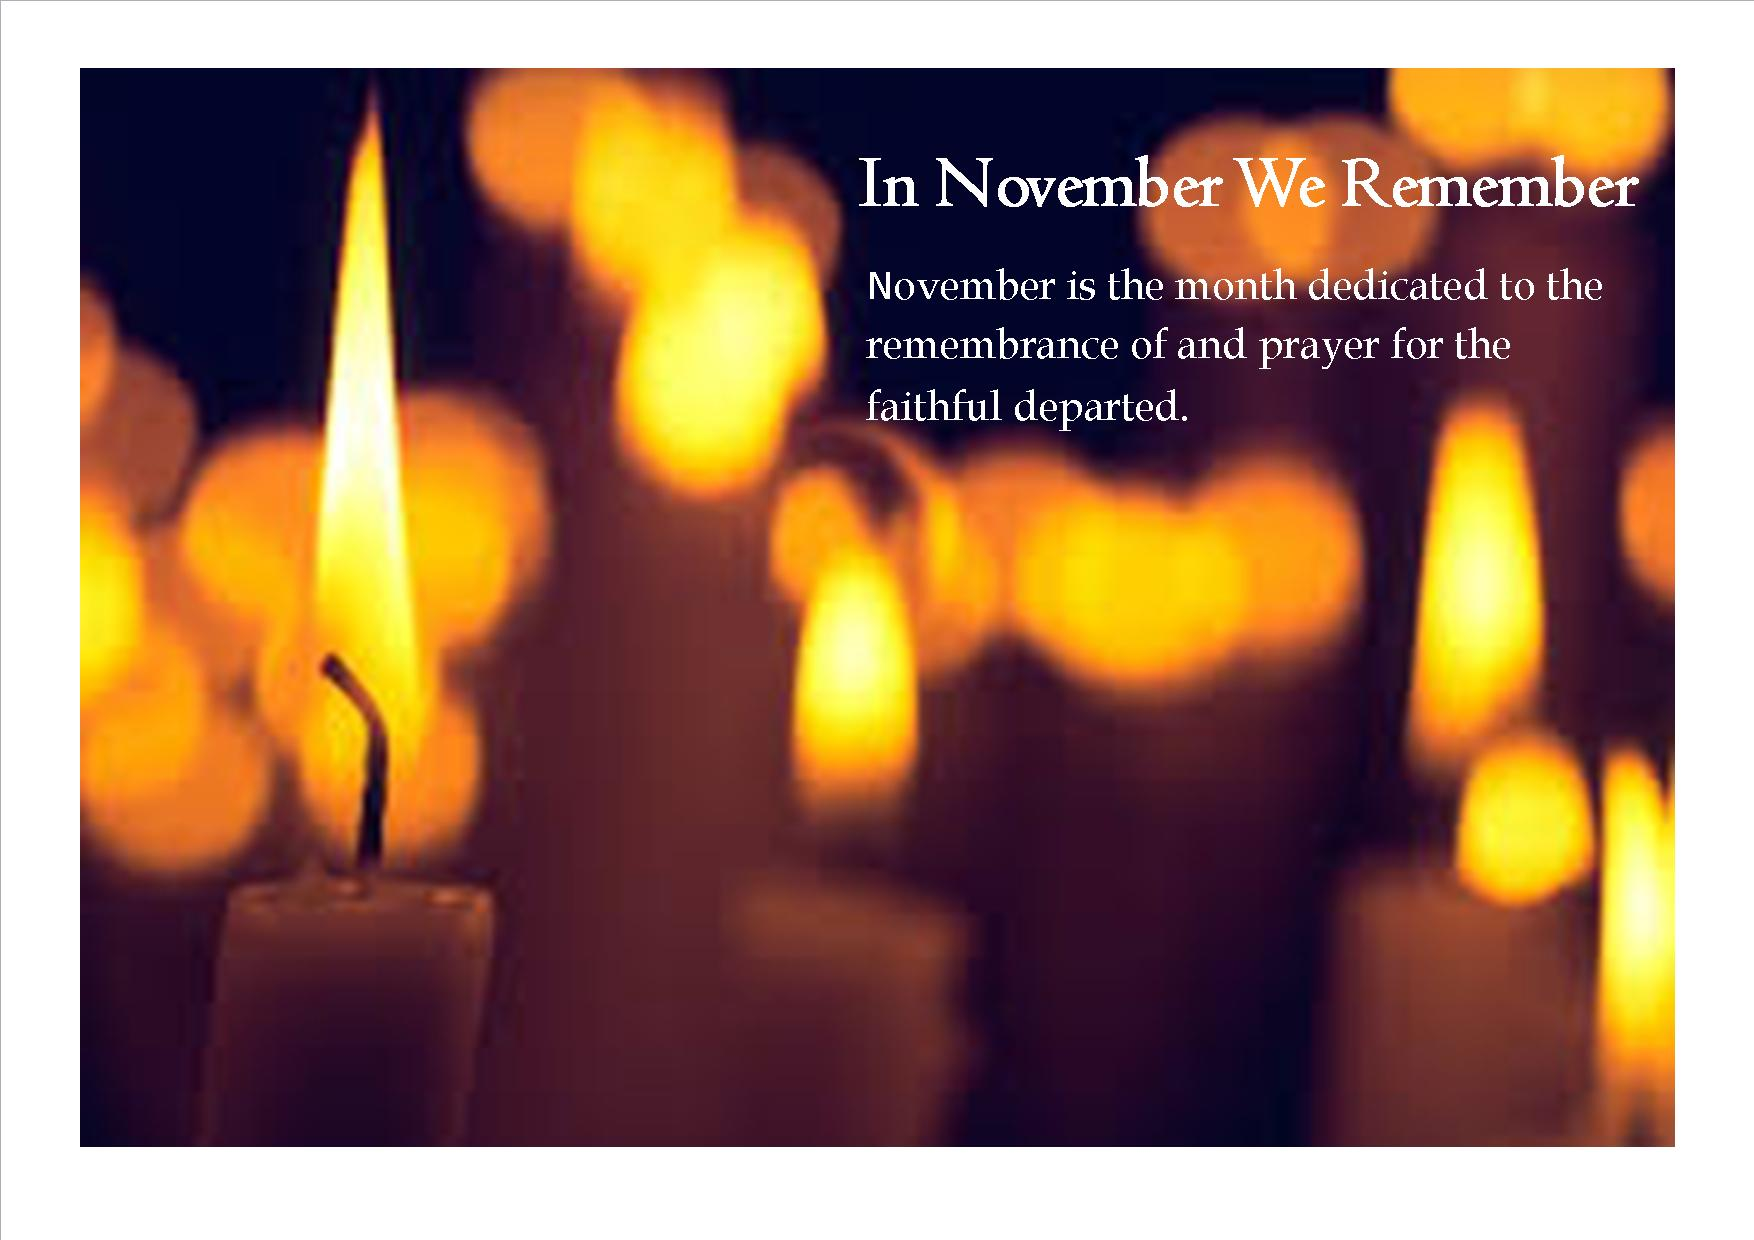 November Remembrance image